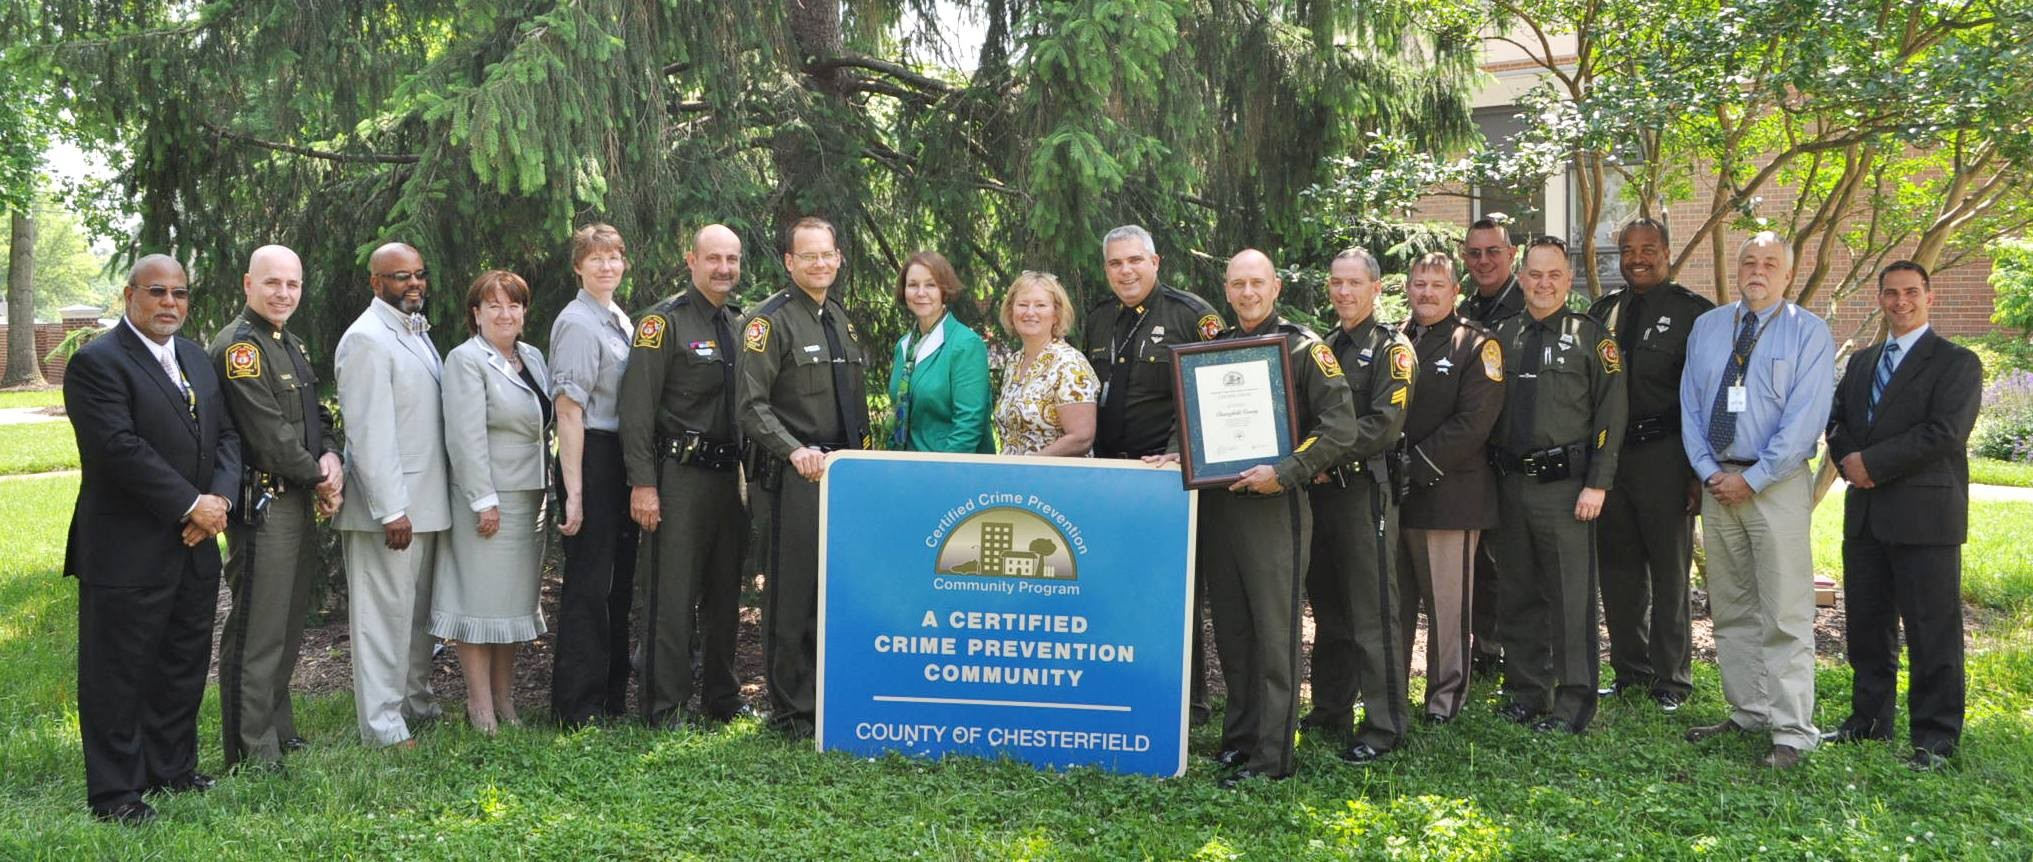 CCPCP - County of Chesterfield becomes certified